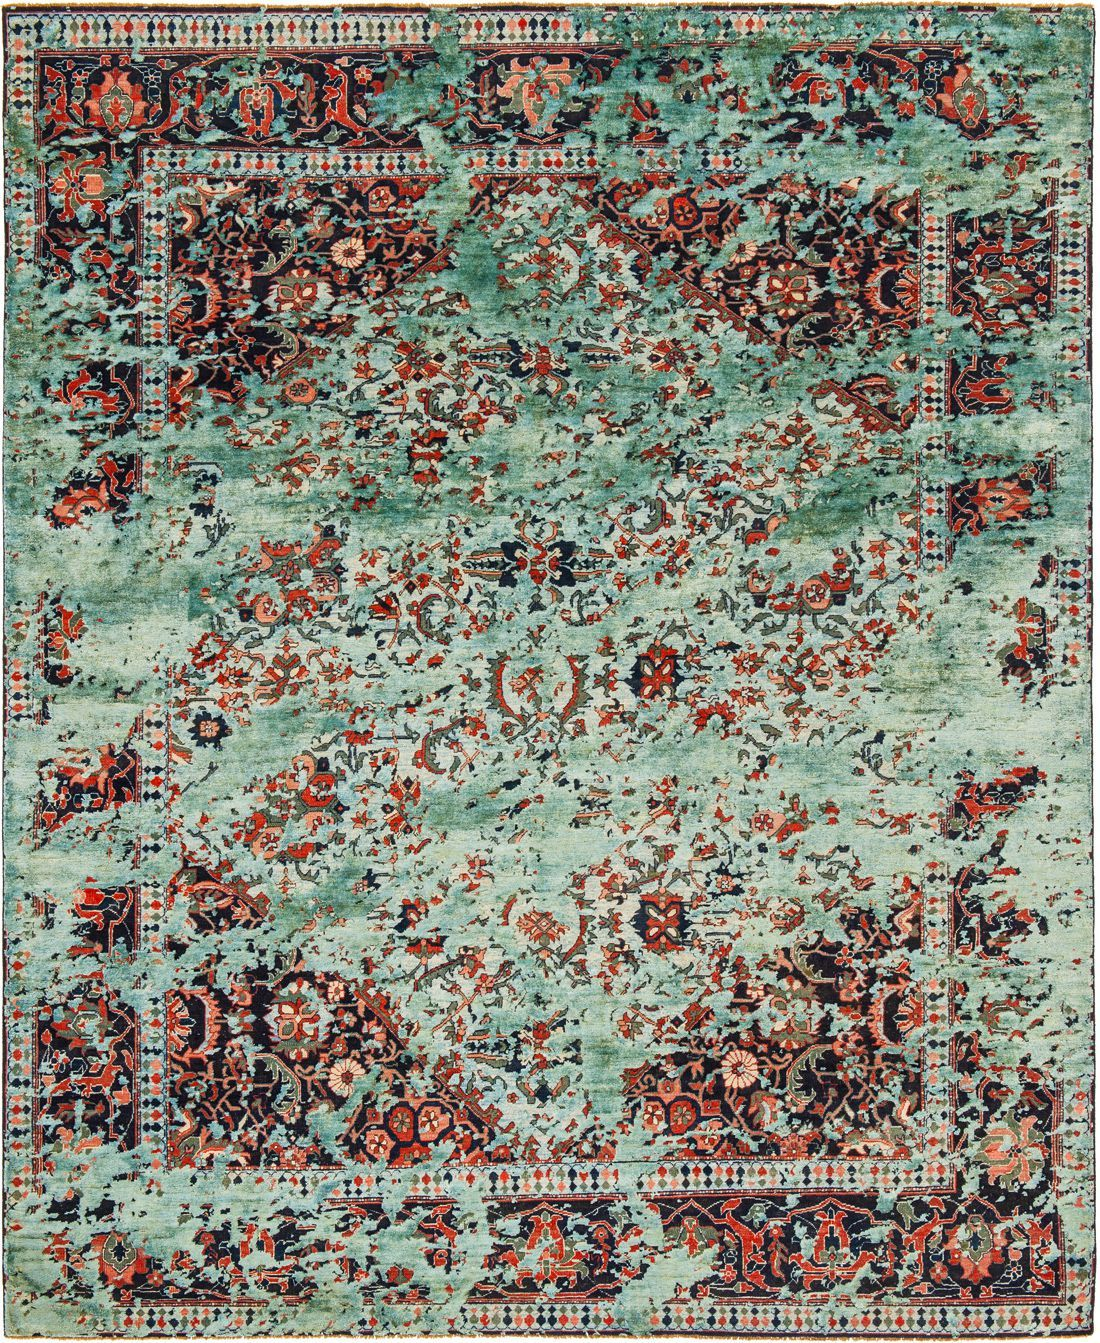 Jan Kath erased heritage by jan kath front rugs decor